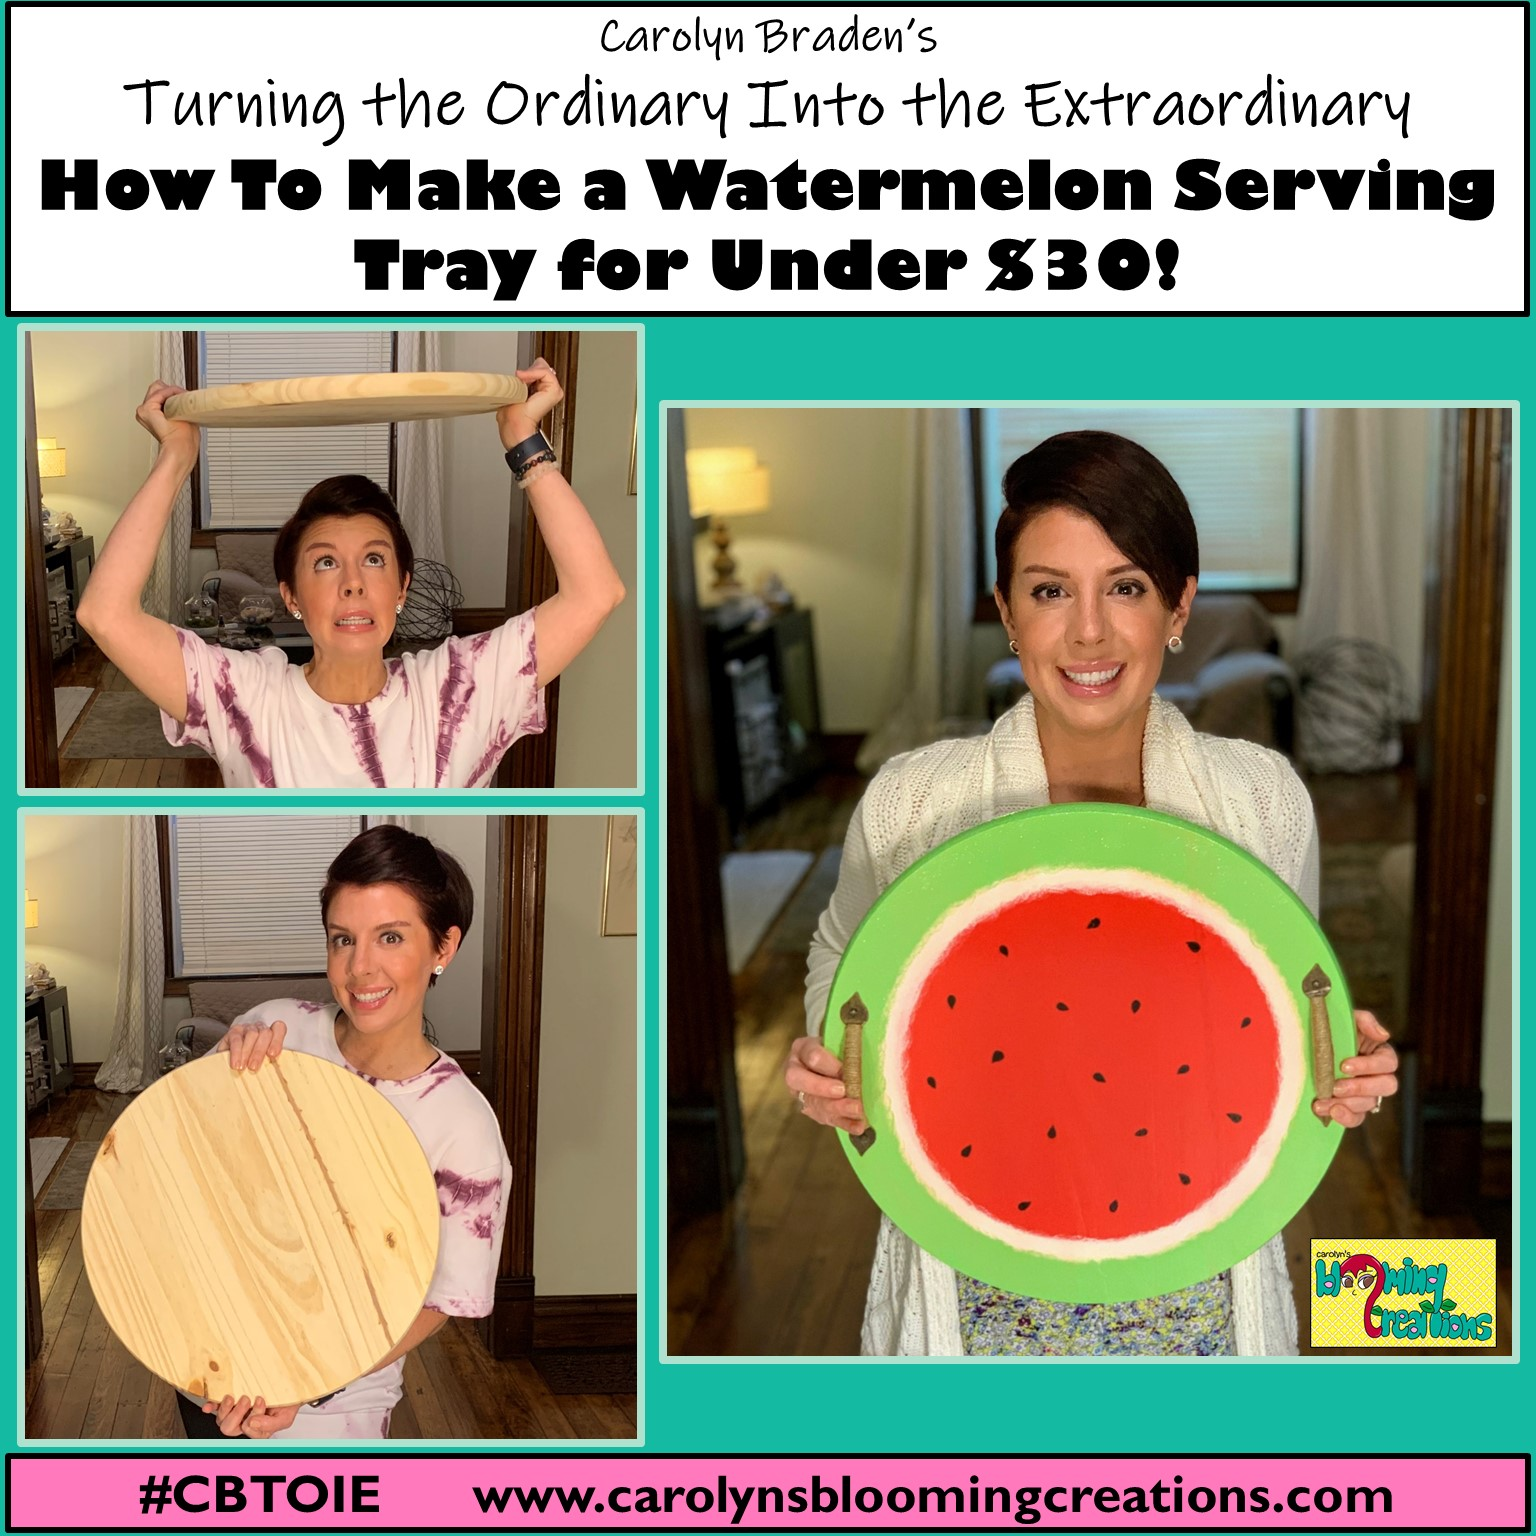 How to Make a Watermelon Serving Tray CBTOIE 2.jpg